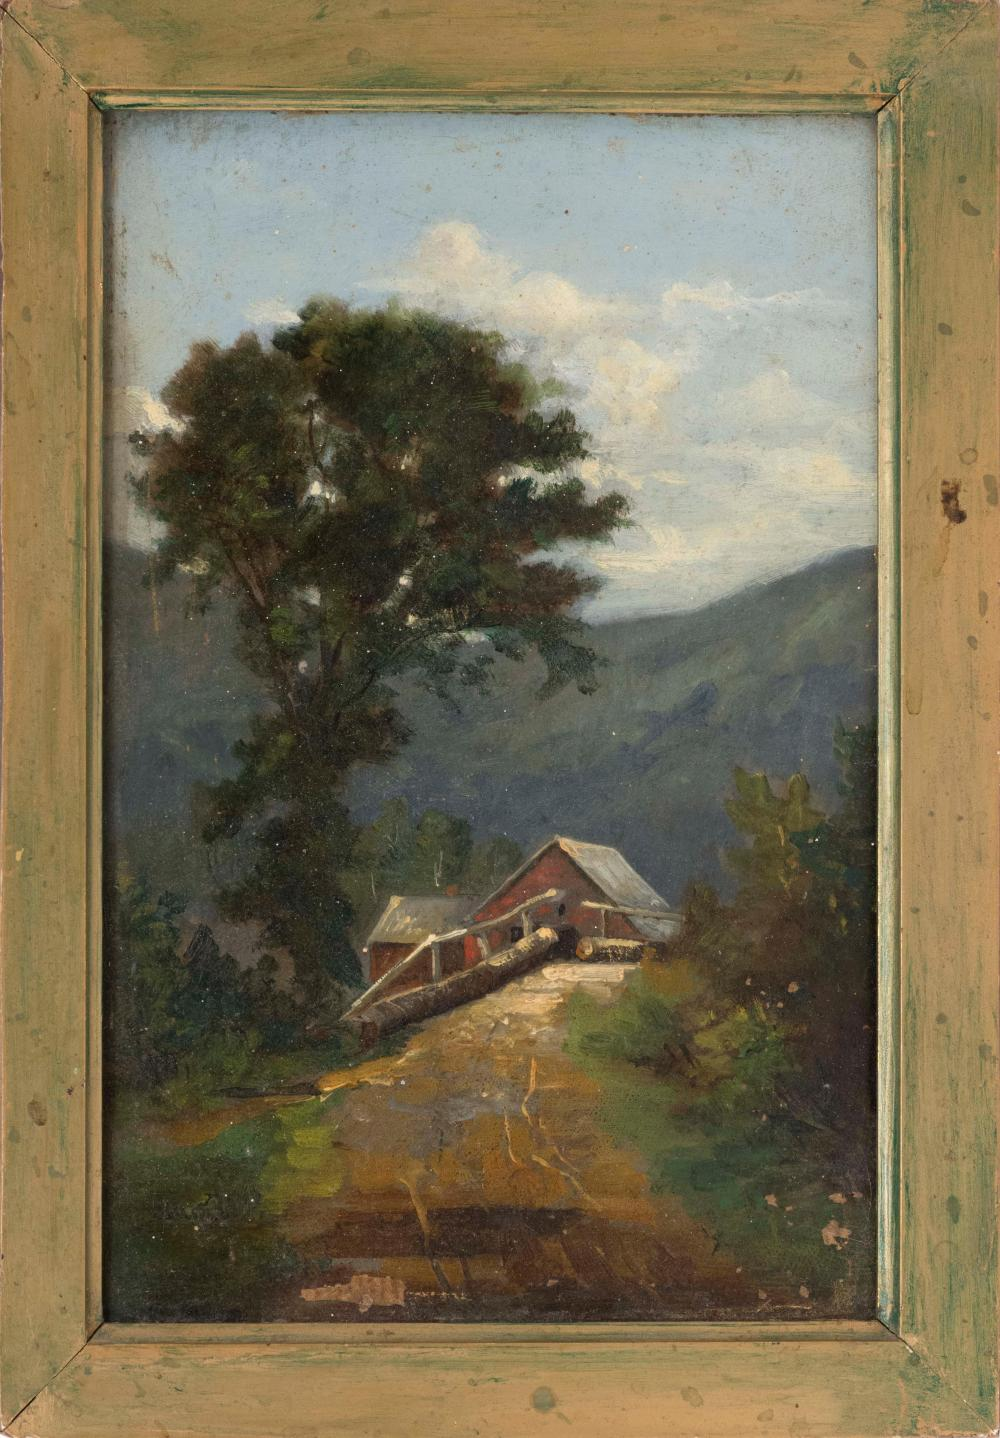 AMERICAN SCHOOL, Late 19th/Early 20th Century, A house on a mountain path., Oil on board, 10.75